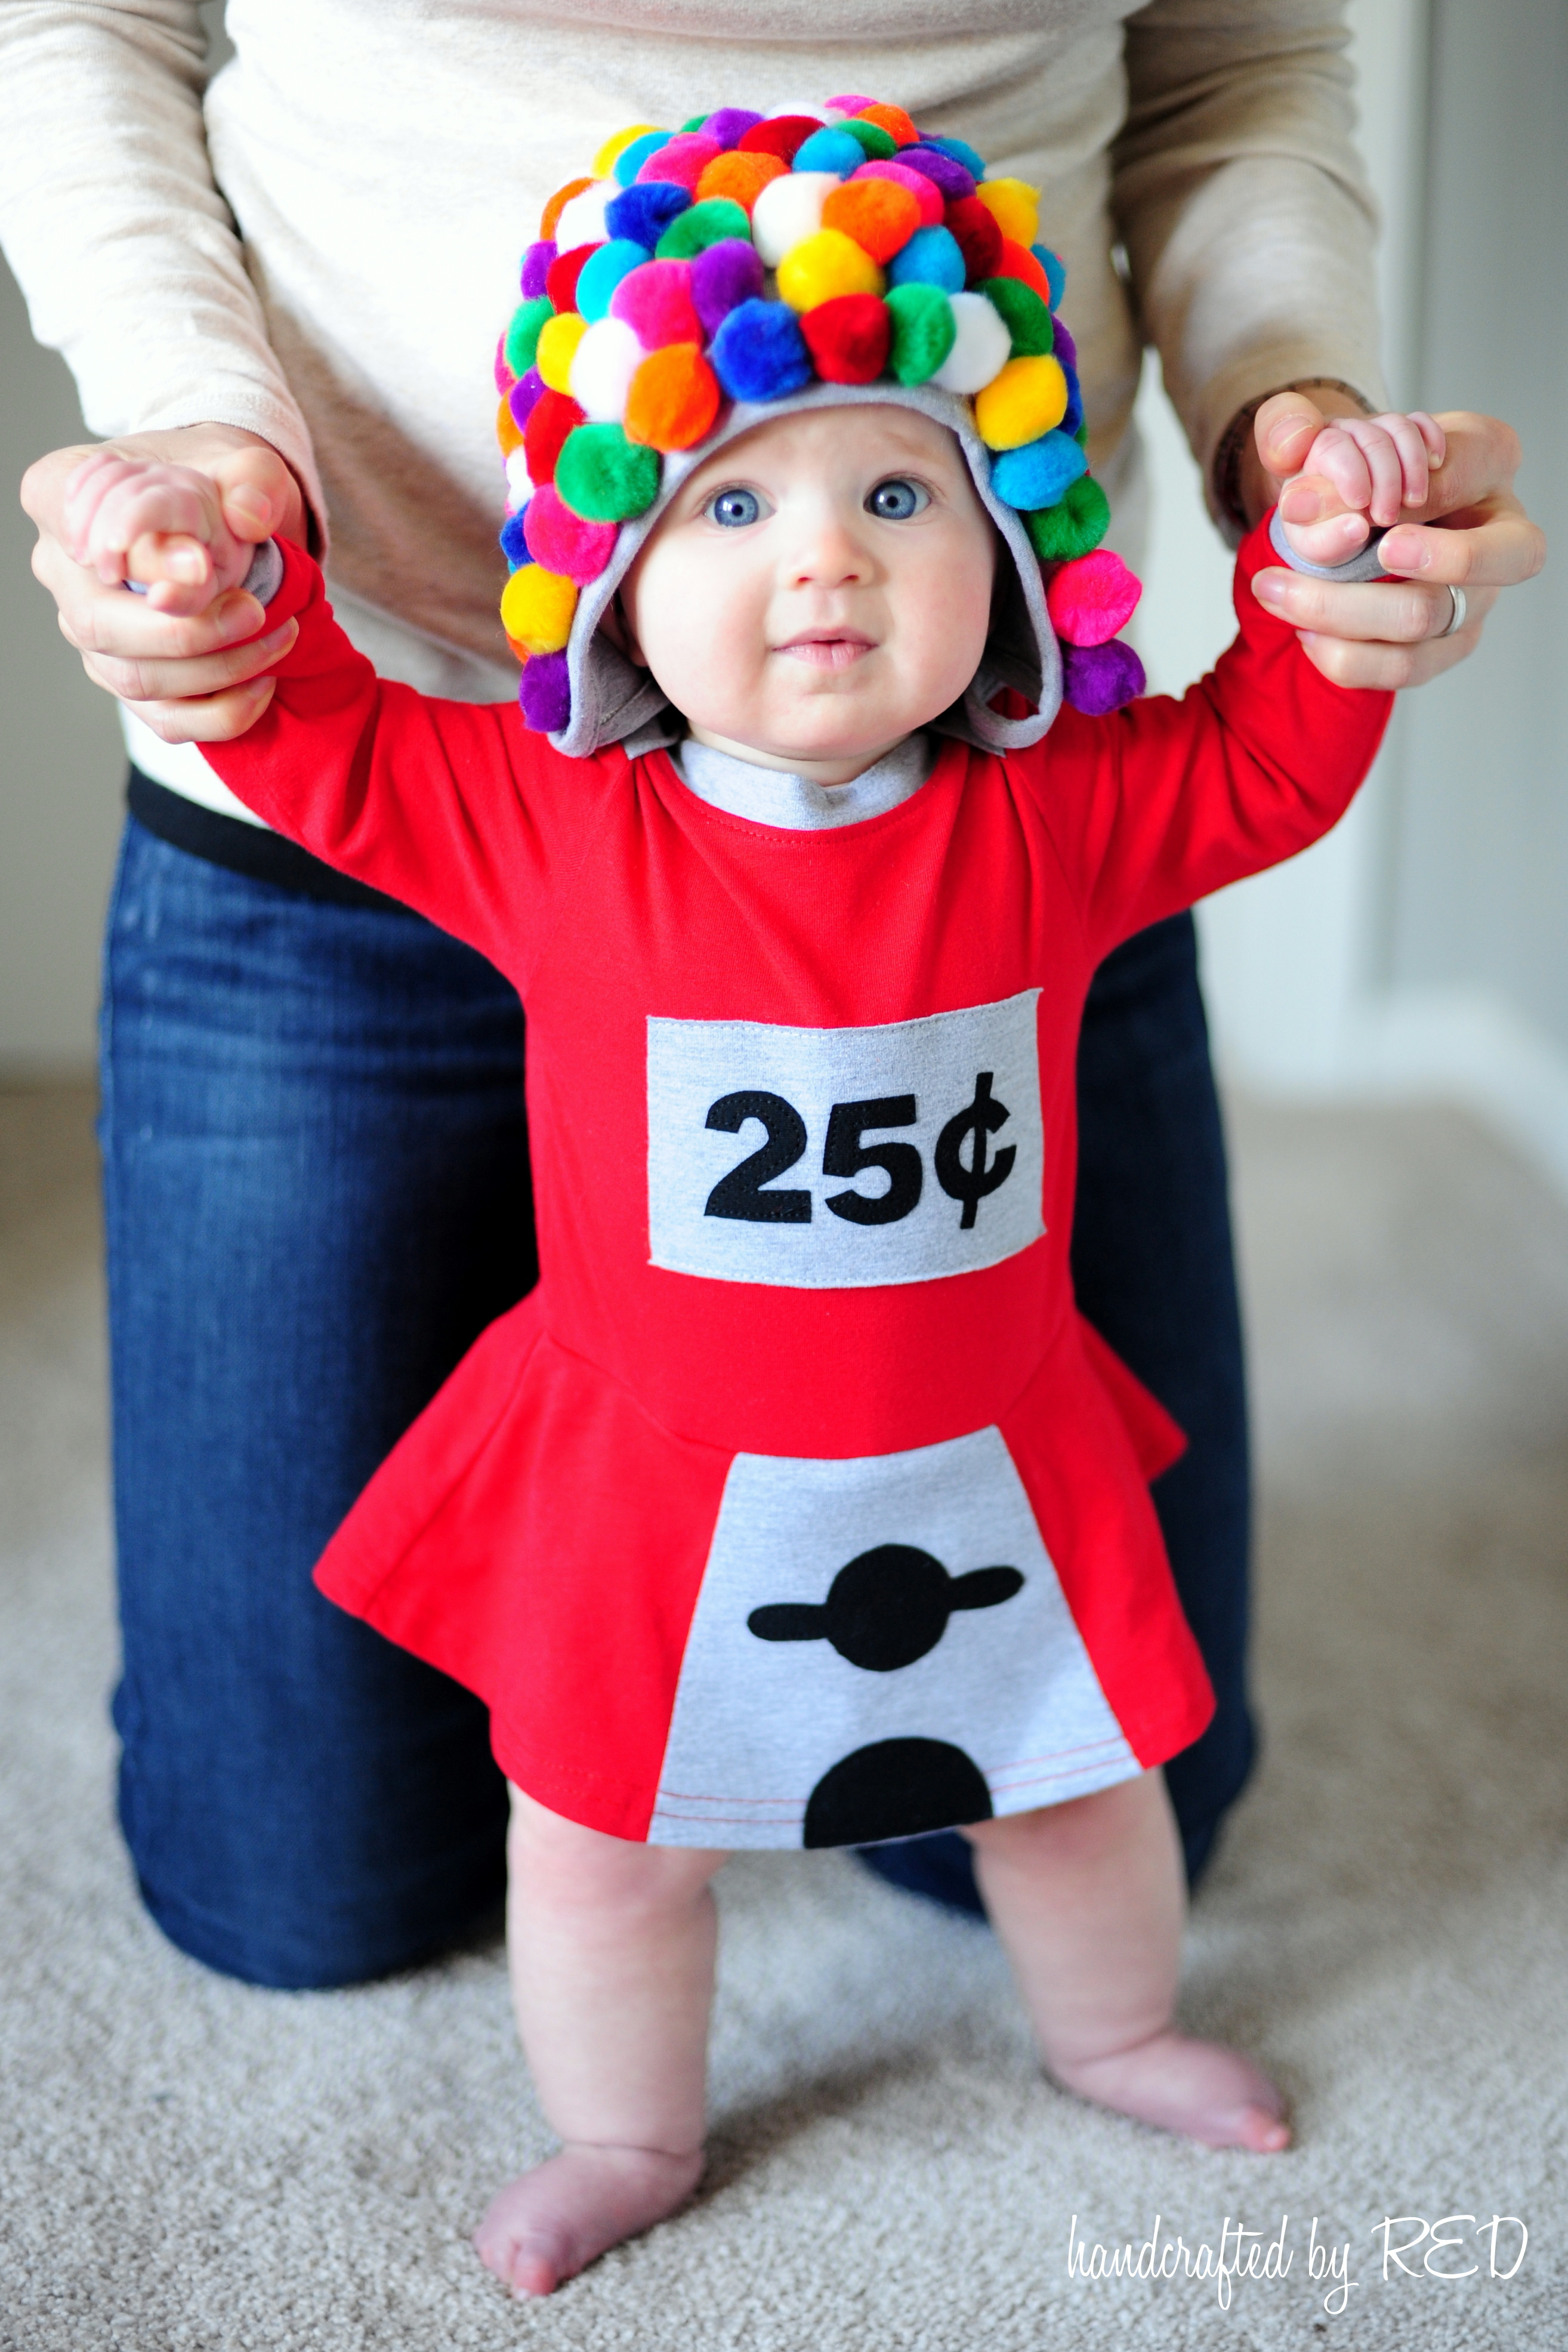 Best ideas about Baby Costume DIY . Save or Pin DIY Baby Gumball Machine Costume Peek a Boo Pages Now.